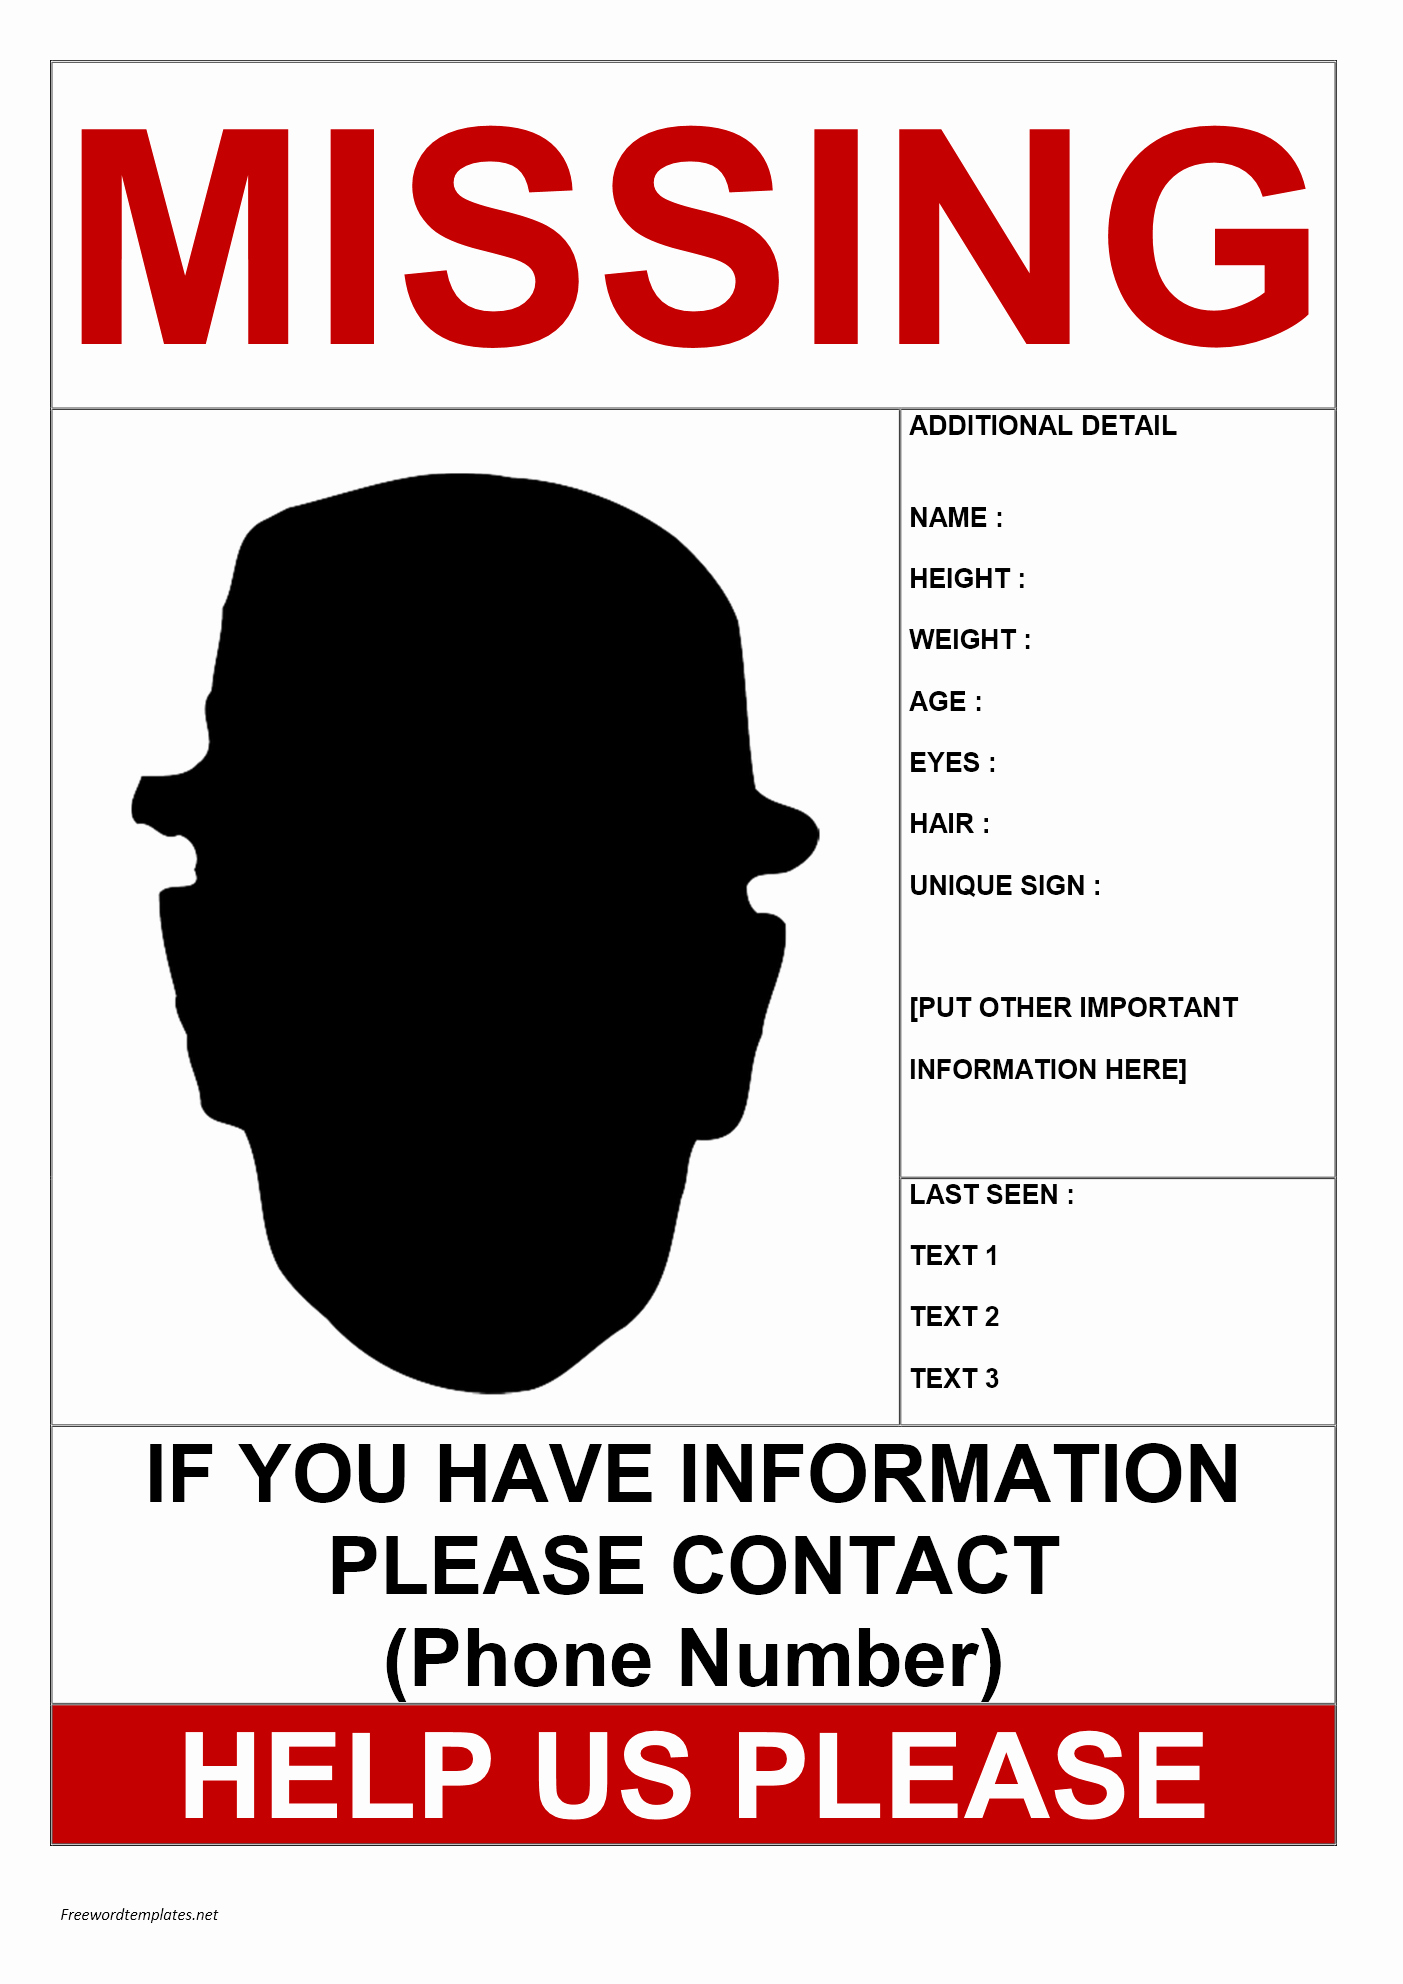 Missing Person Flyer Template Luxury Missing Person Poster Template